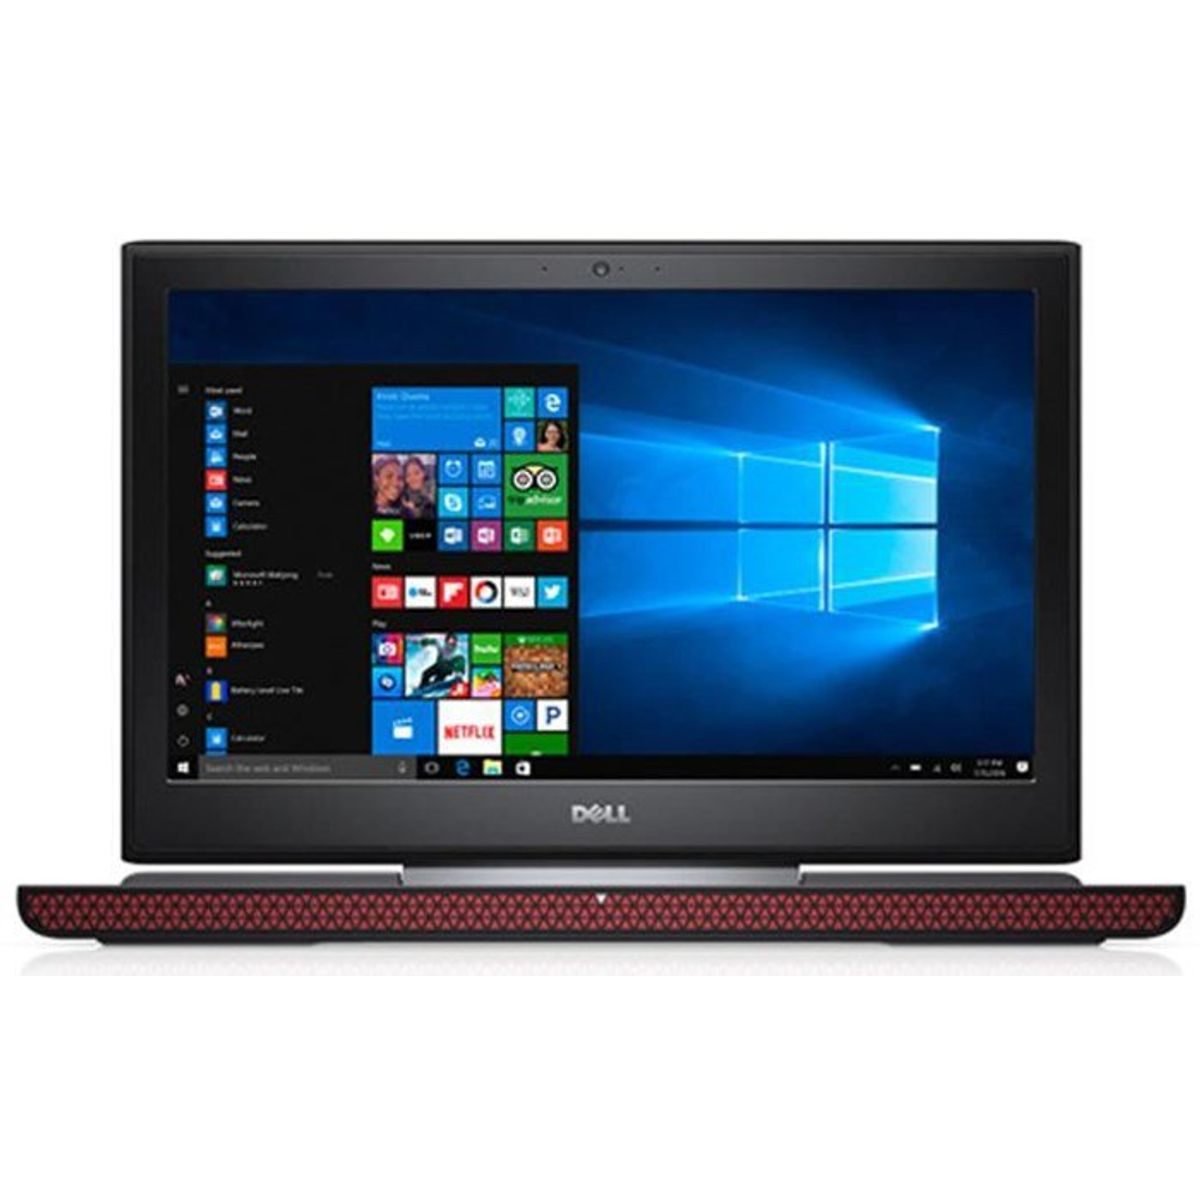 Dell Inspiron 15 7000 Gaming, Core i5-6300HQ, 8GB RAM, 256GB SSD (7566-1821)